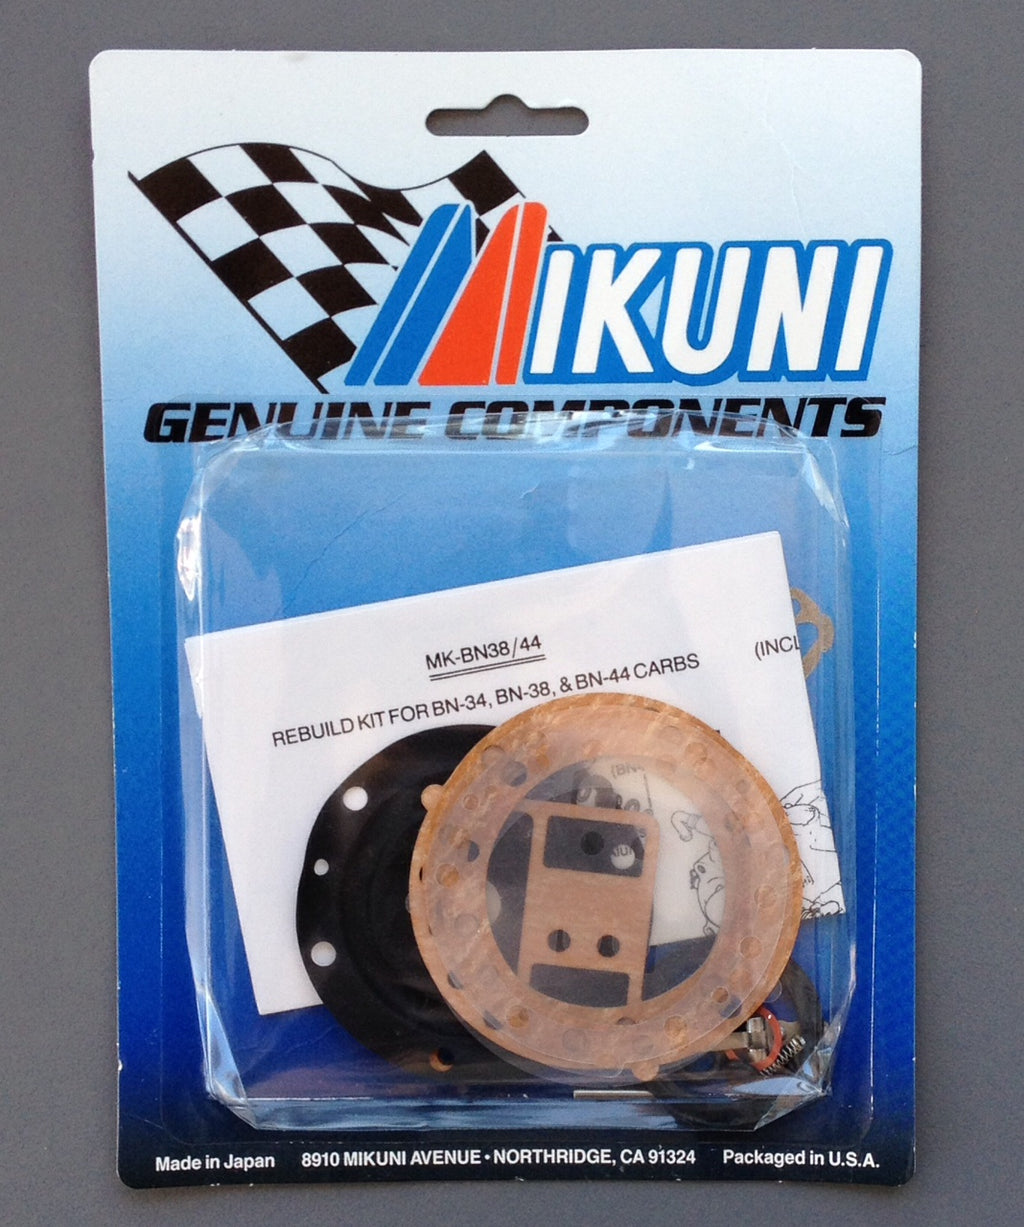 Rebuild Kit For Mikuni BN38 & 44 Mikuni Round Body Type